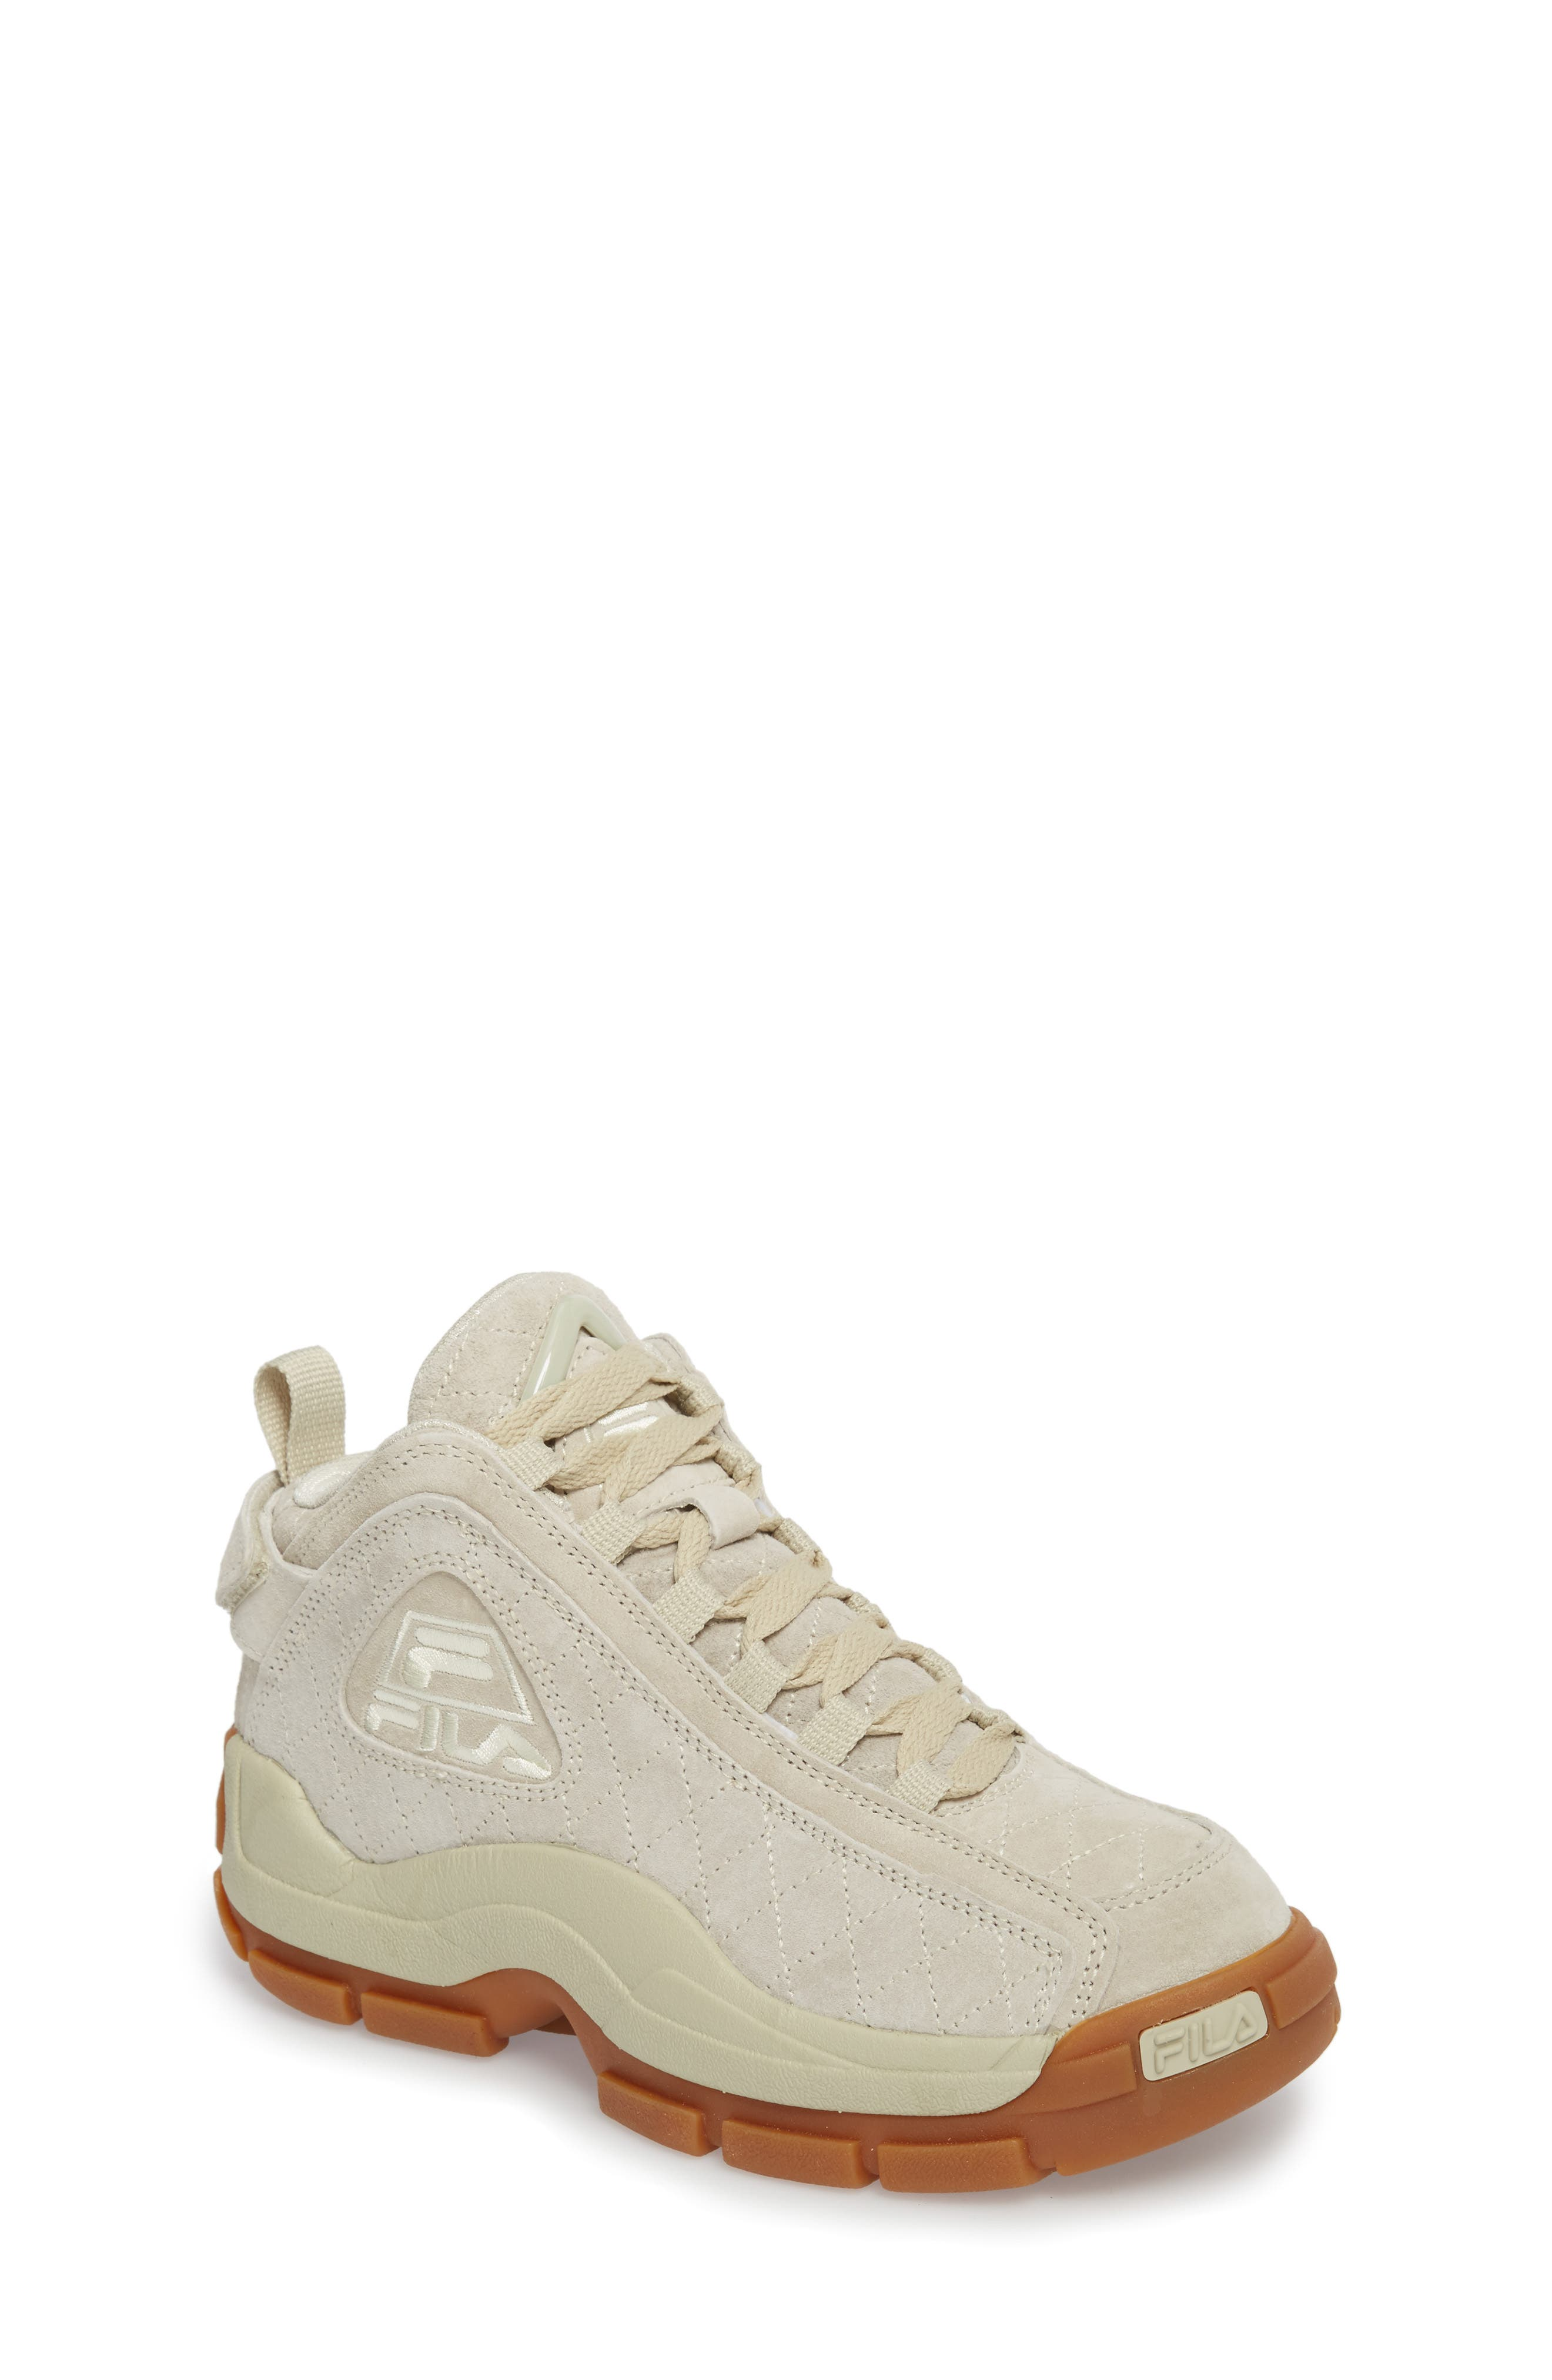 96 Quilted Mid-Top Sneaker,                         Main,                         color, Cream/ Gum